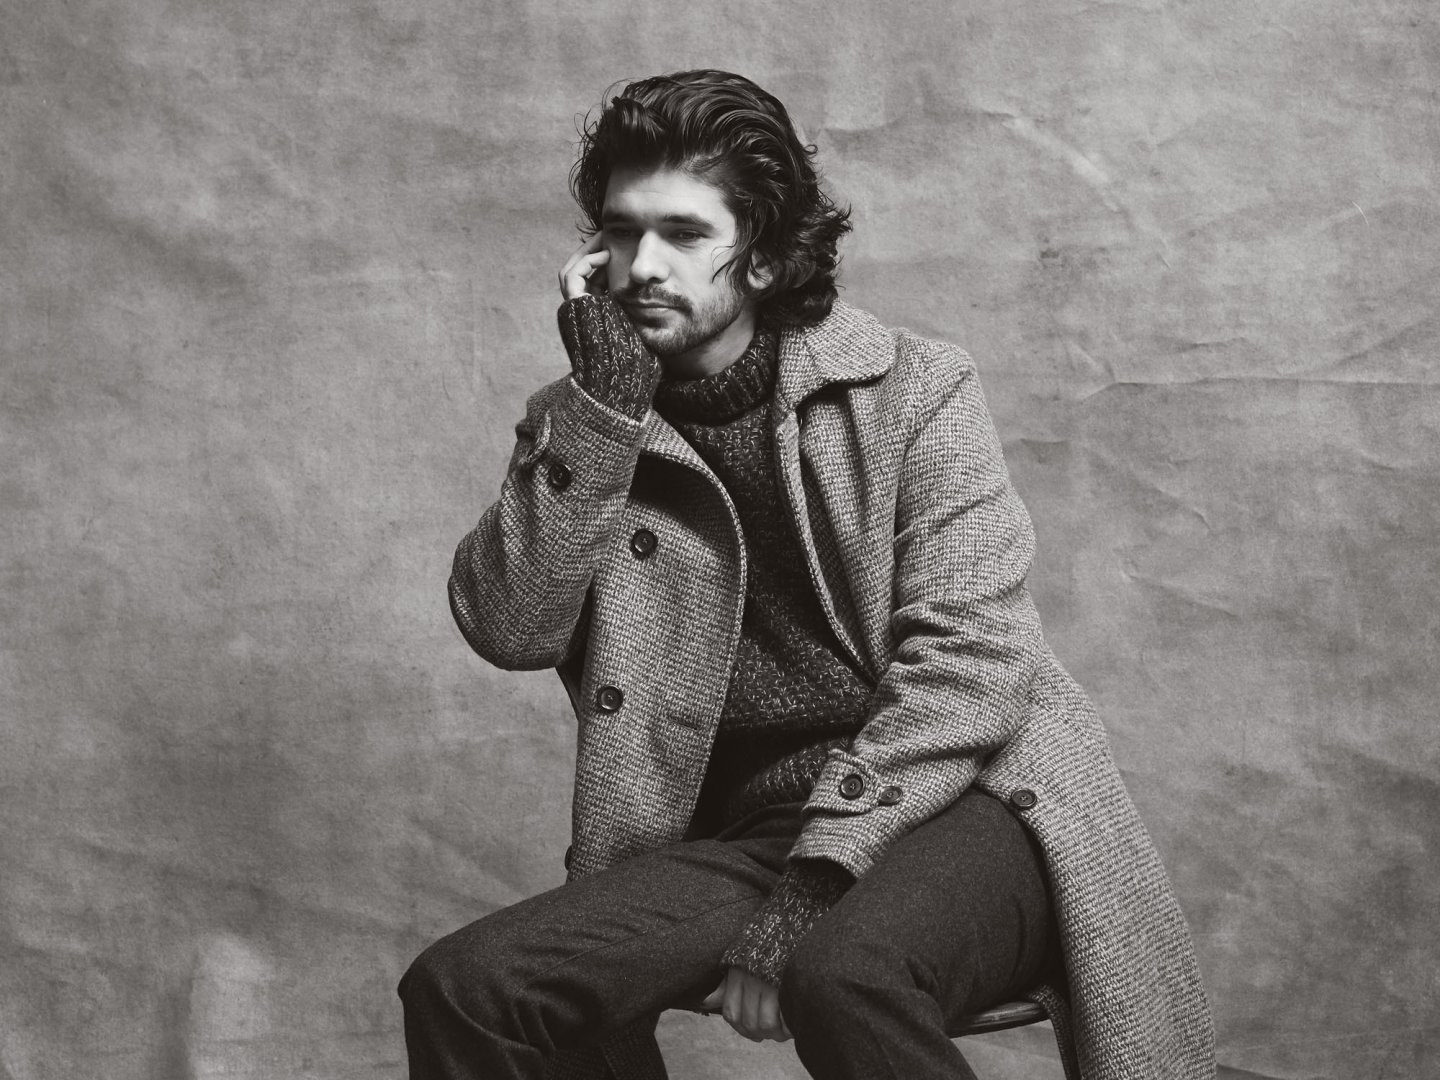 ben whishaw kimdirben whishaw tumblr, ben whishaw gif, ben whishaw 2017, ben whishaw gif hunt, ben whishaw 2016, ben whishaw theatre, ben whishaw and mark bradshaw tumblr, ben whishaw skyfall, ben whishaw prada, ben whishaw listal, ben whishaw annabel lee, ben whishaw with husband, ben whishaw and brother, ben whishaw bafta, ben whishaw sherlock, ben whishaw kimdir, ben whishaw gay scenes, ben whishaw hologram for the king, ben whishaw interview, ben whishaw weight height